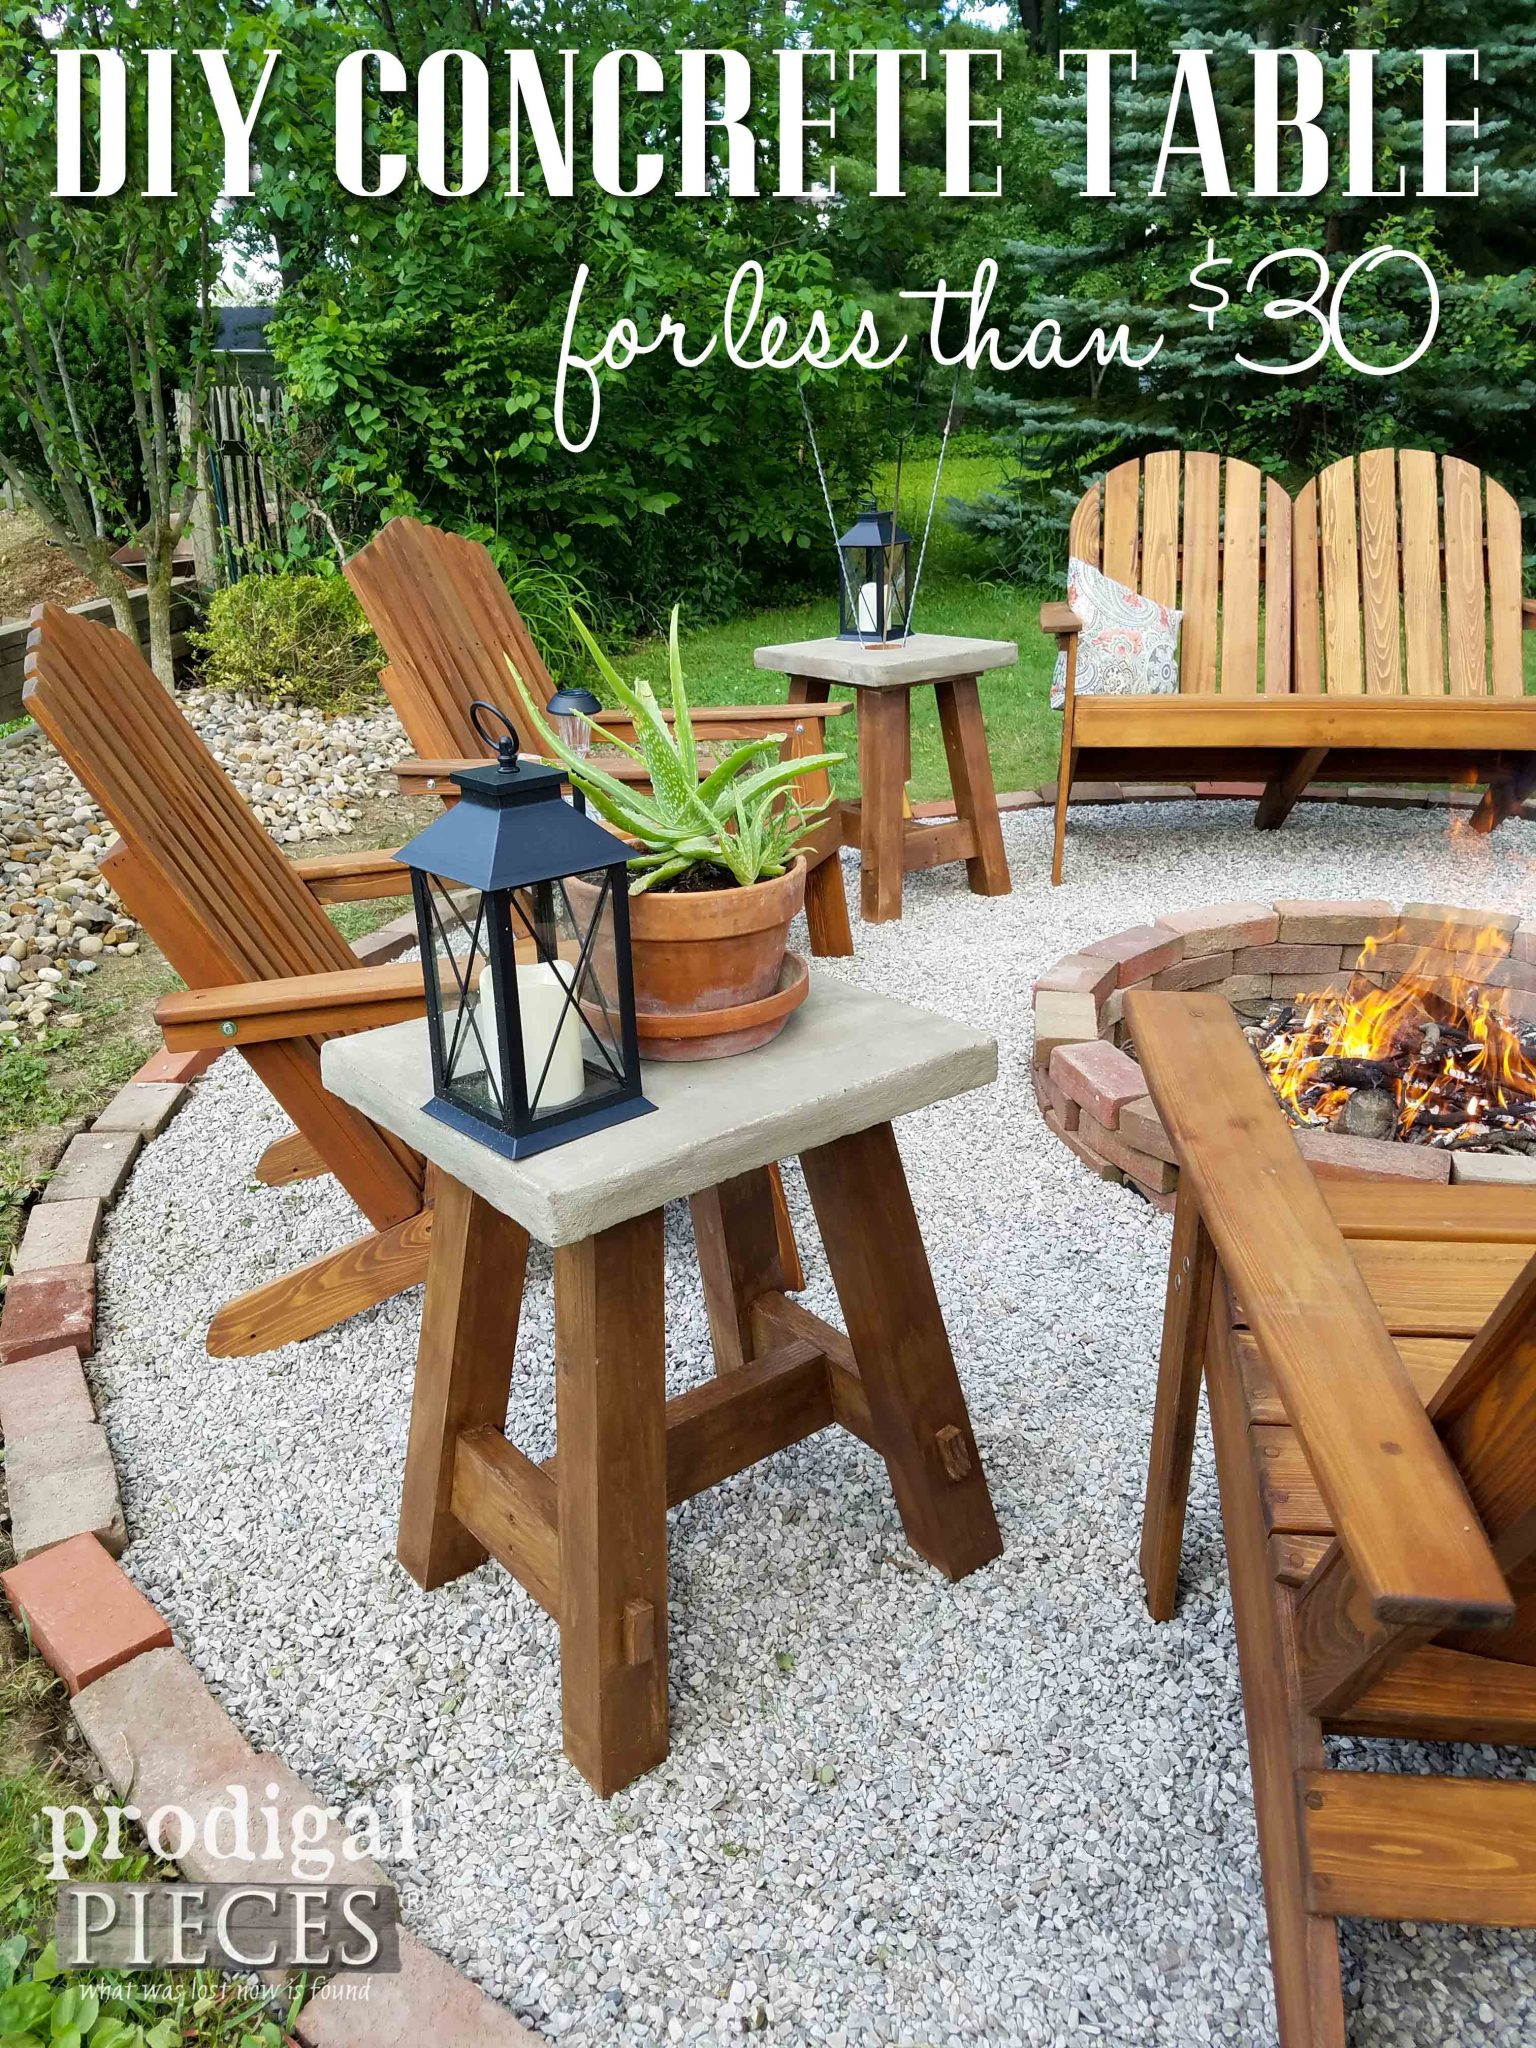 Build this Concrete Table for Less than $30. Easy-to-follow build plans by Prodigal Pieces | prodigalpieces.com